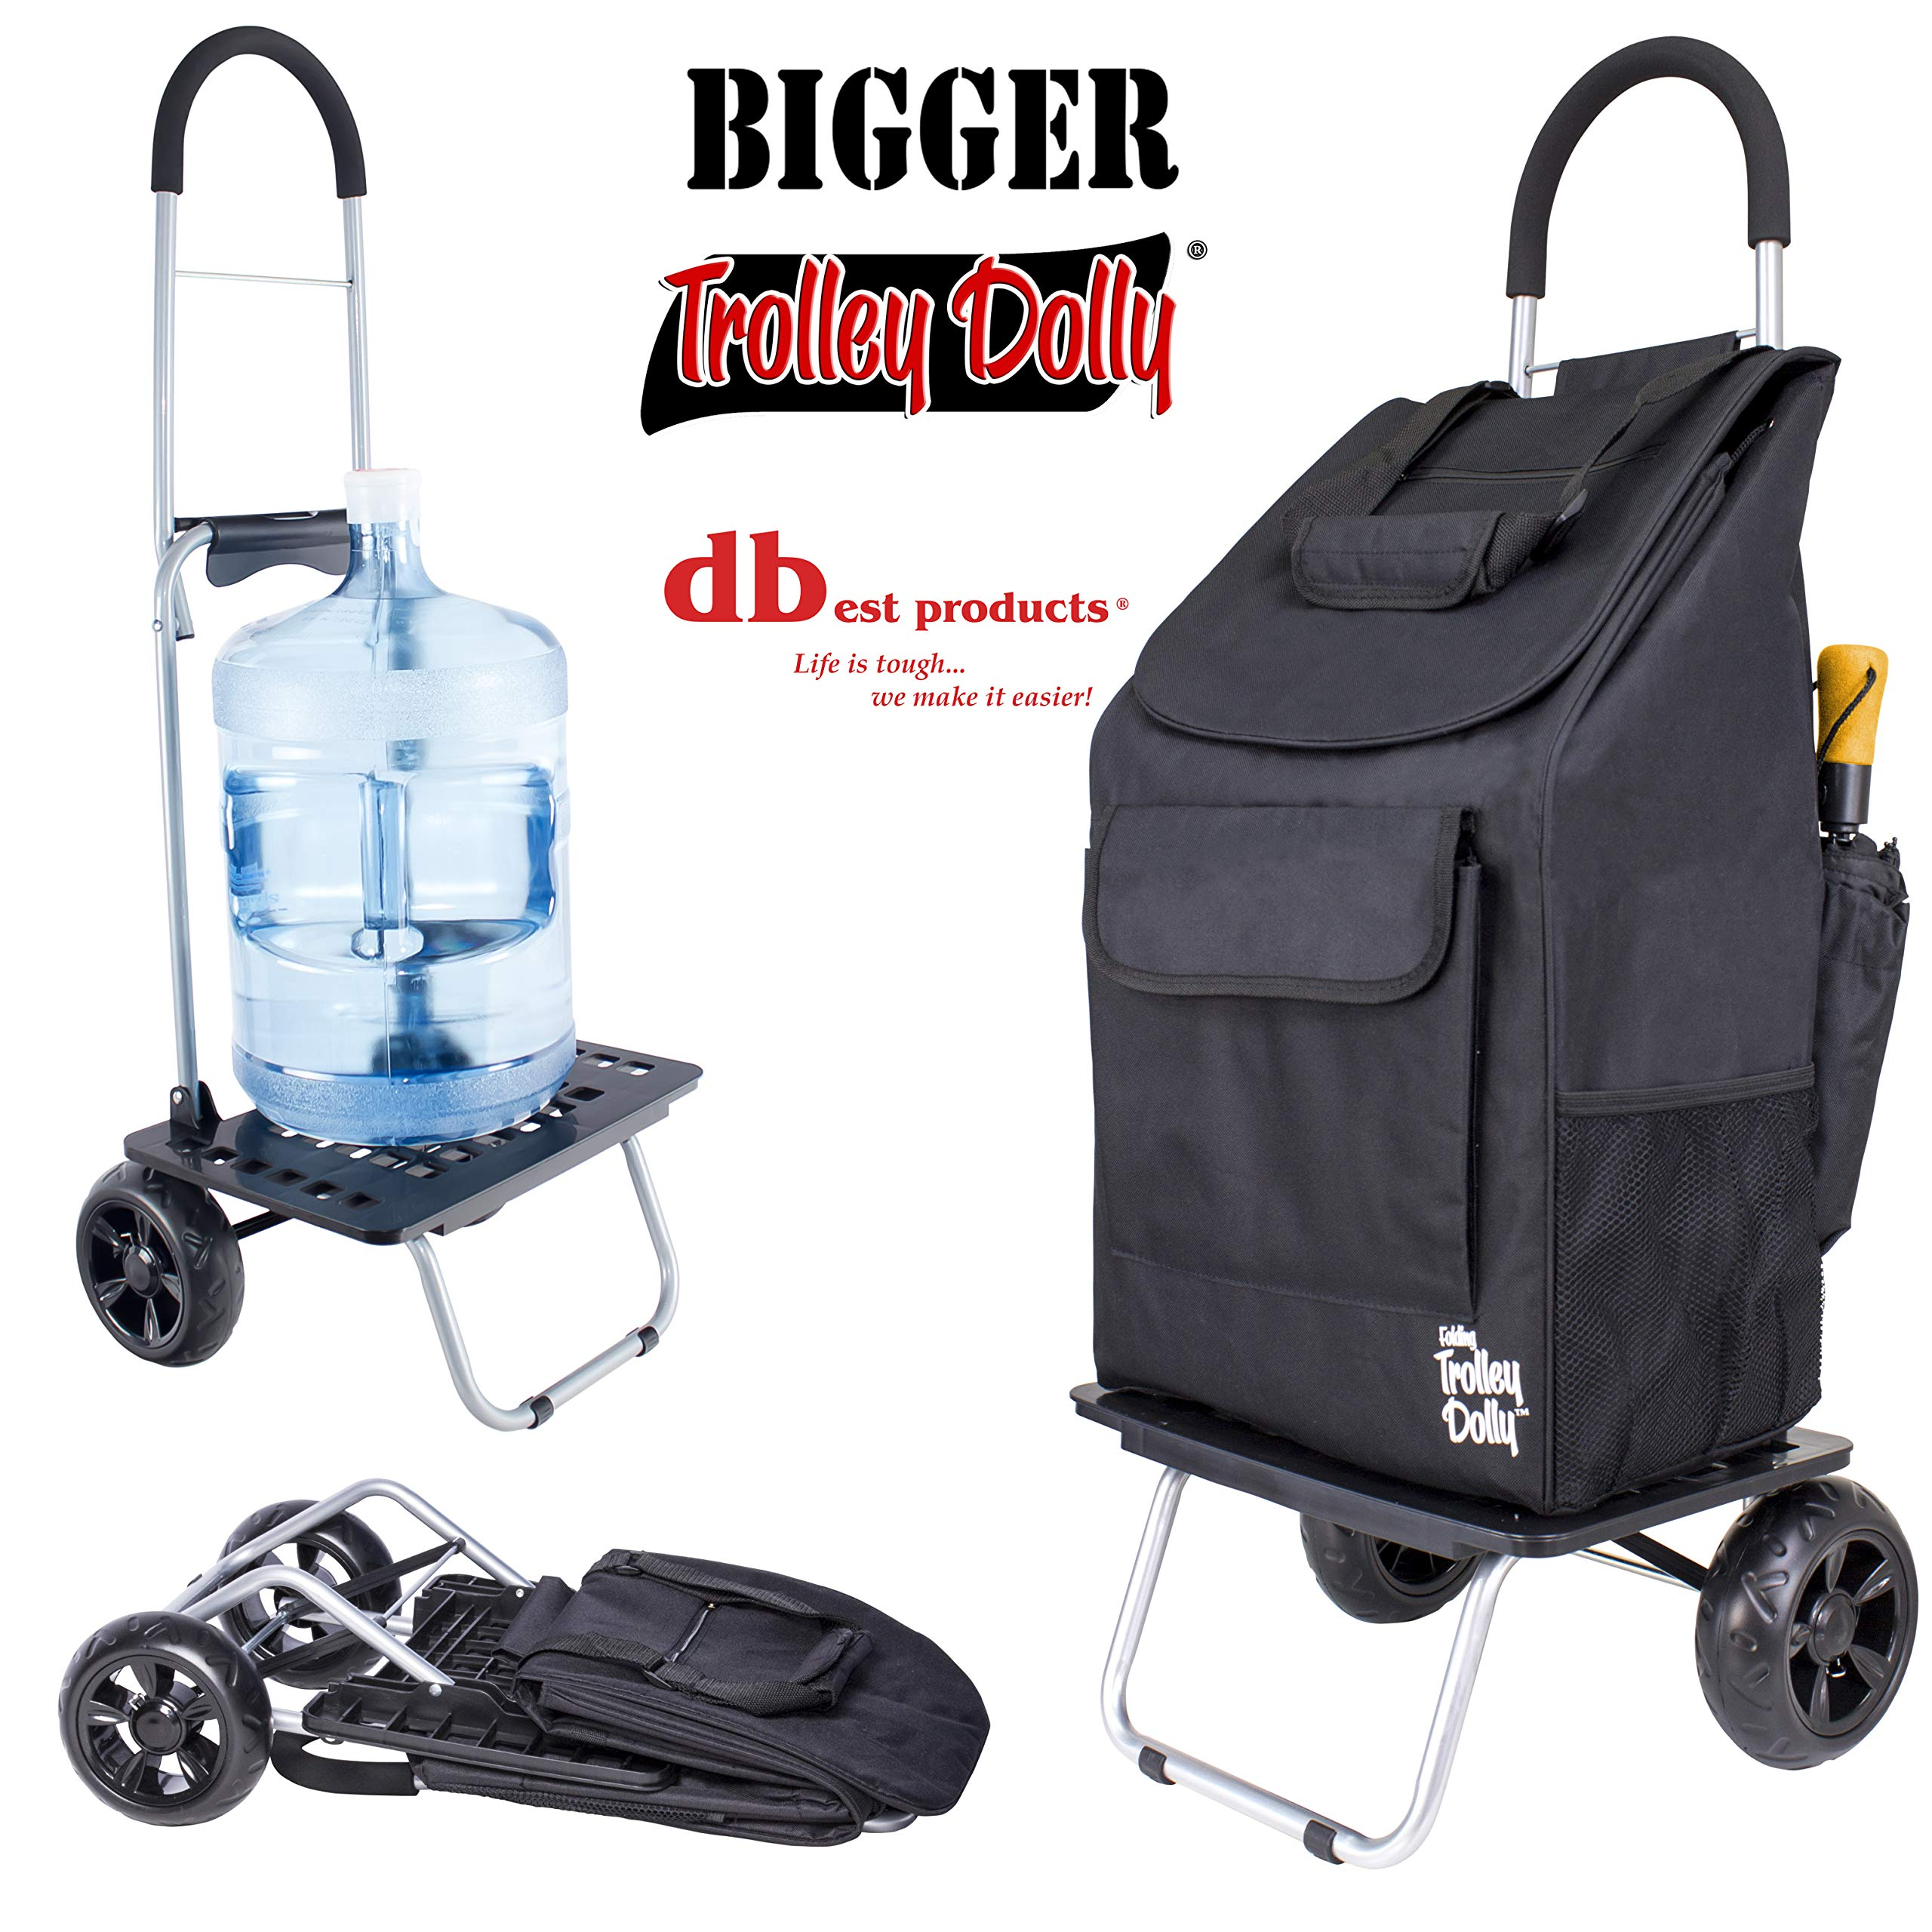 dbest products Bigger Trolley Dolly, Black Shopping Grocery Foldable Cart by dbest products